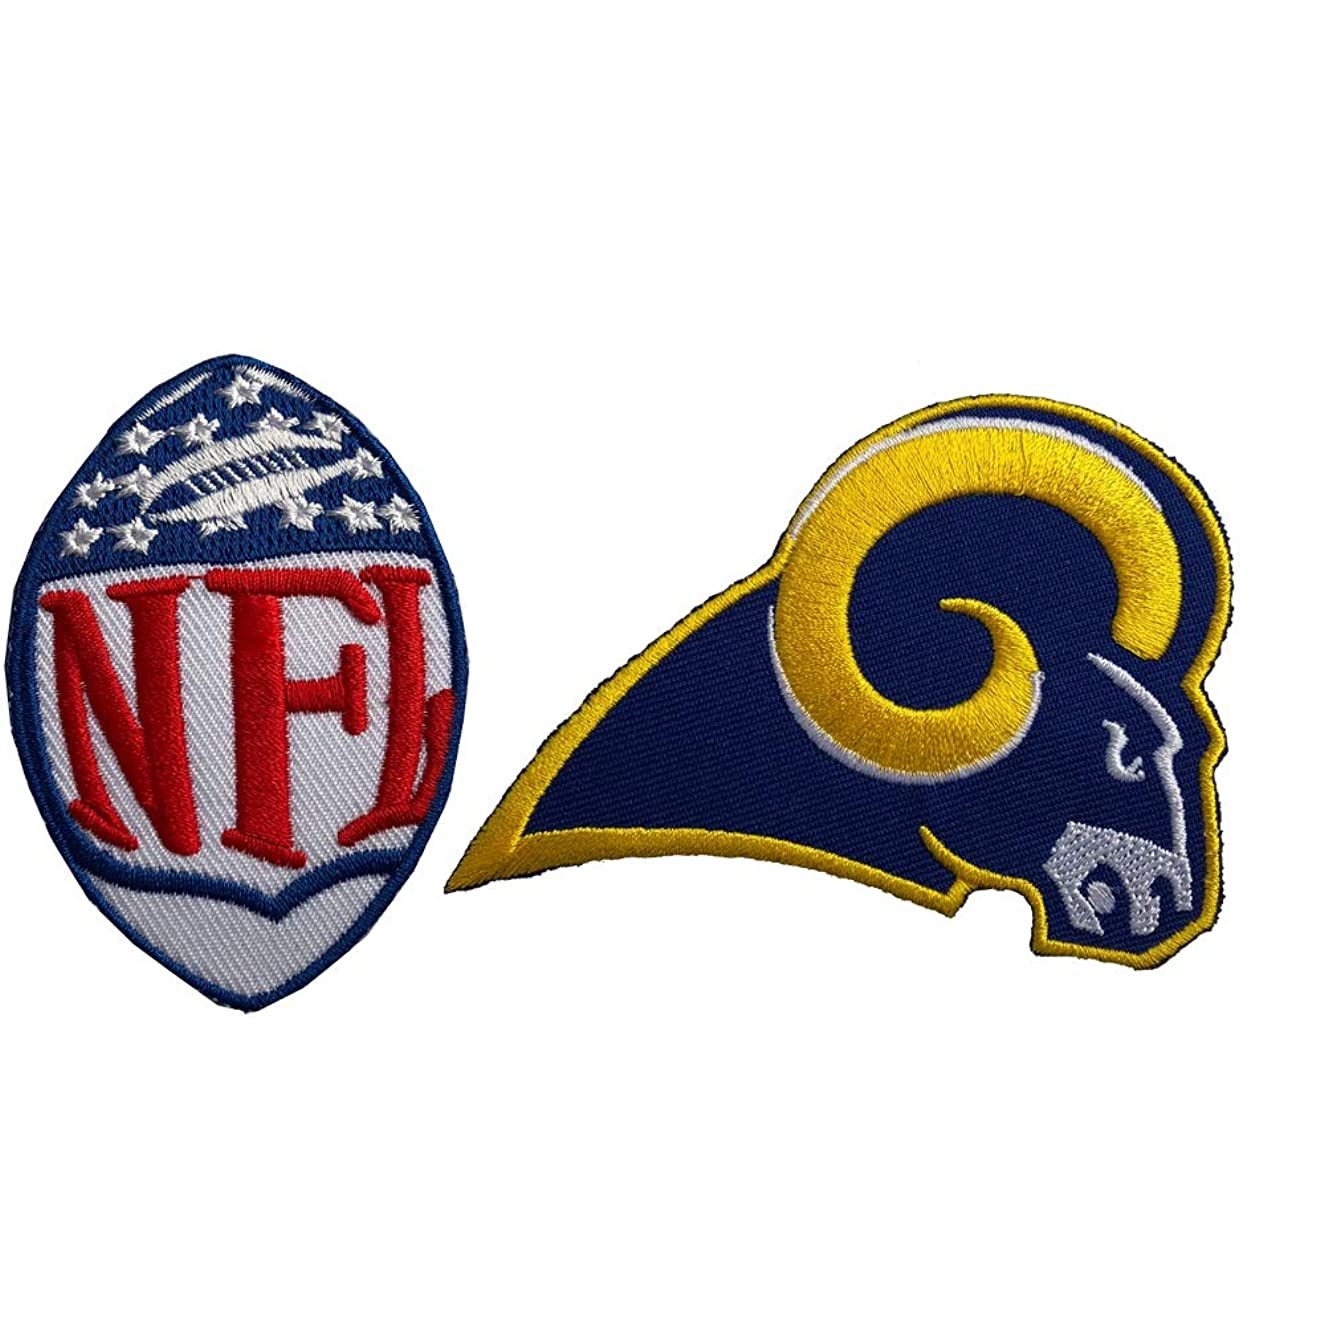 Hipatch Los Angeles Rams Embroidered Patch Iron on Logo Vest Jacket Cap Hoodie Backpack Patch Iron On/sew on Patch Set of 2Pcs